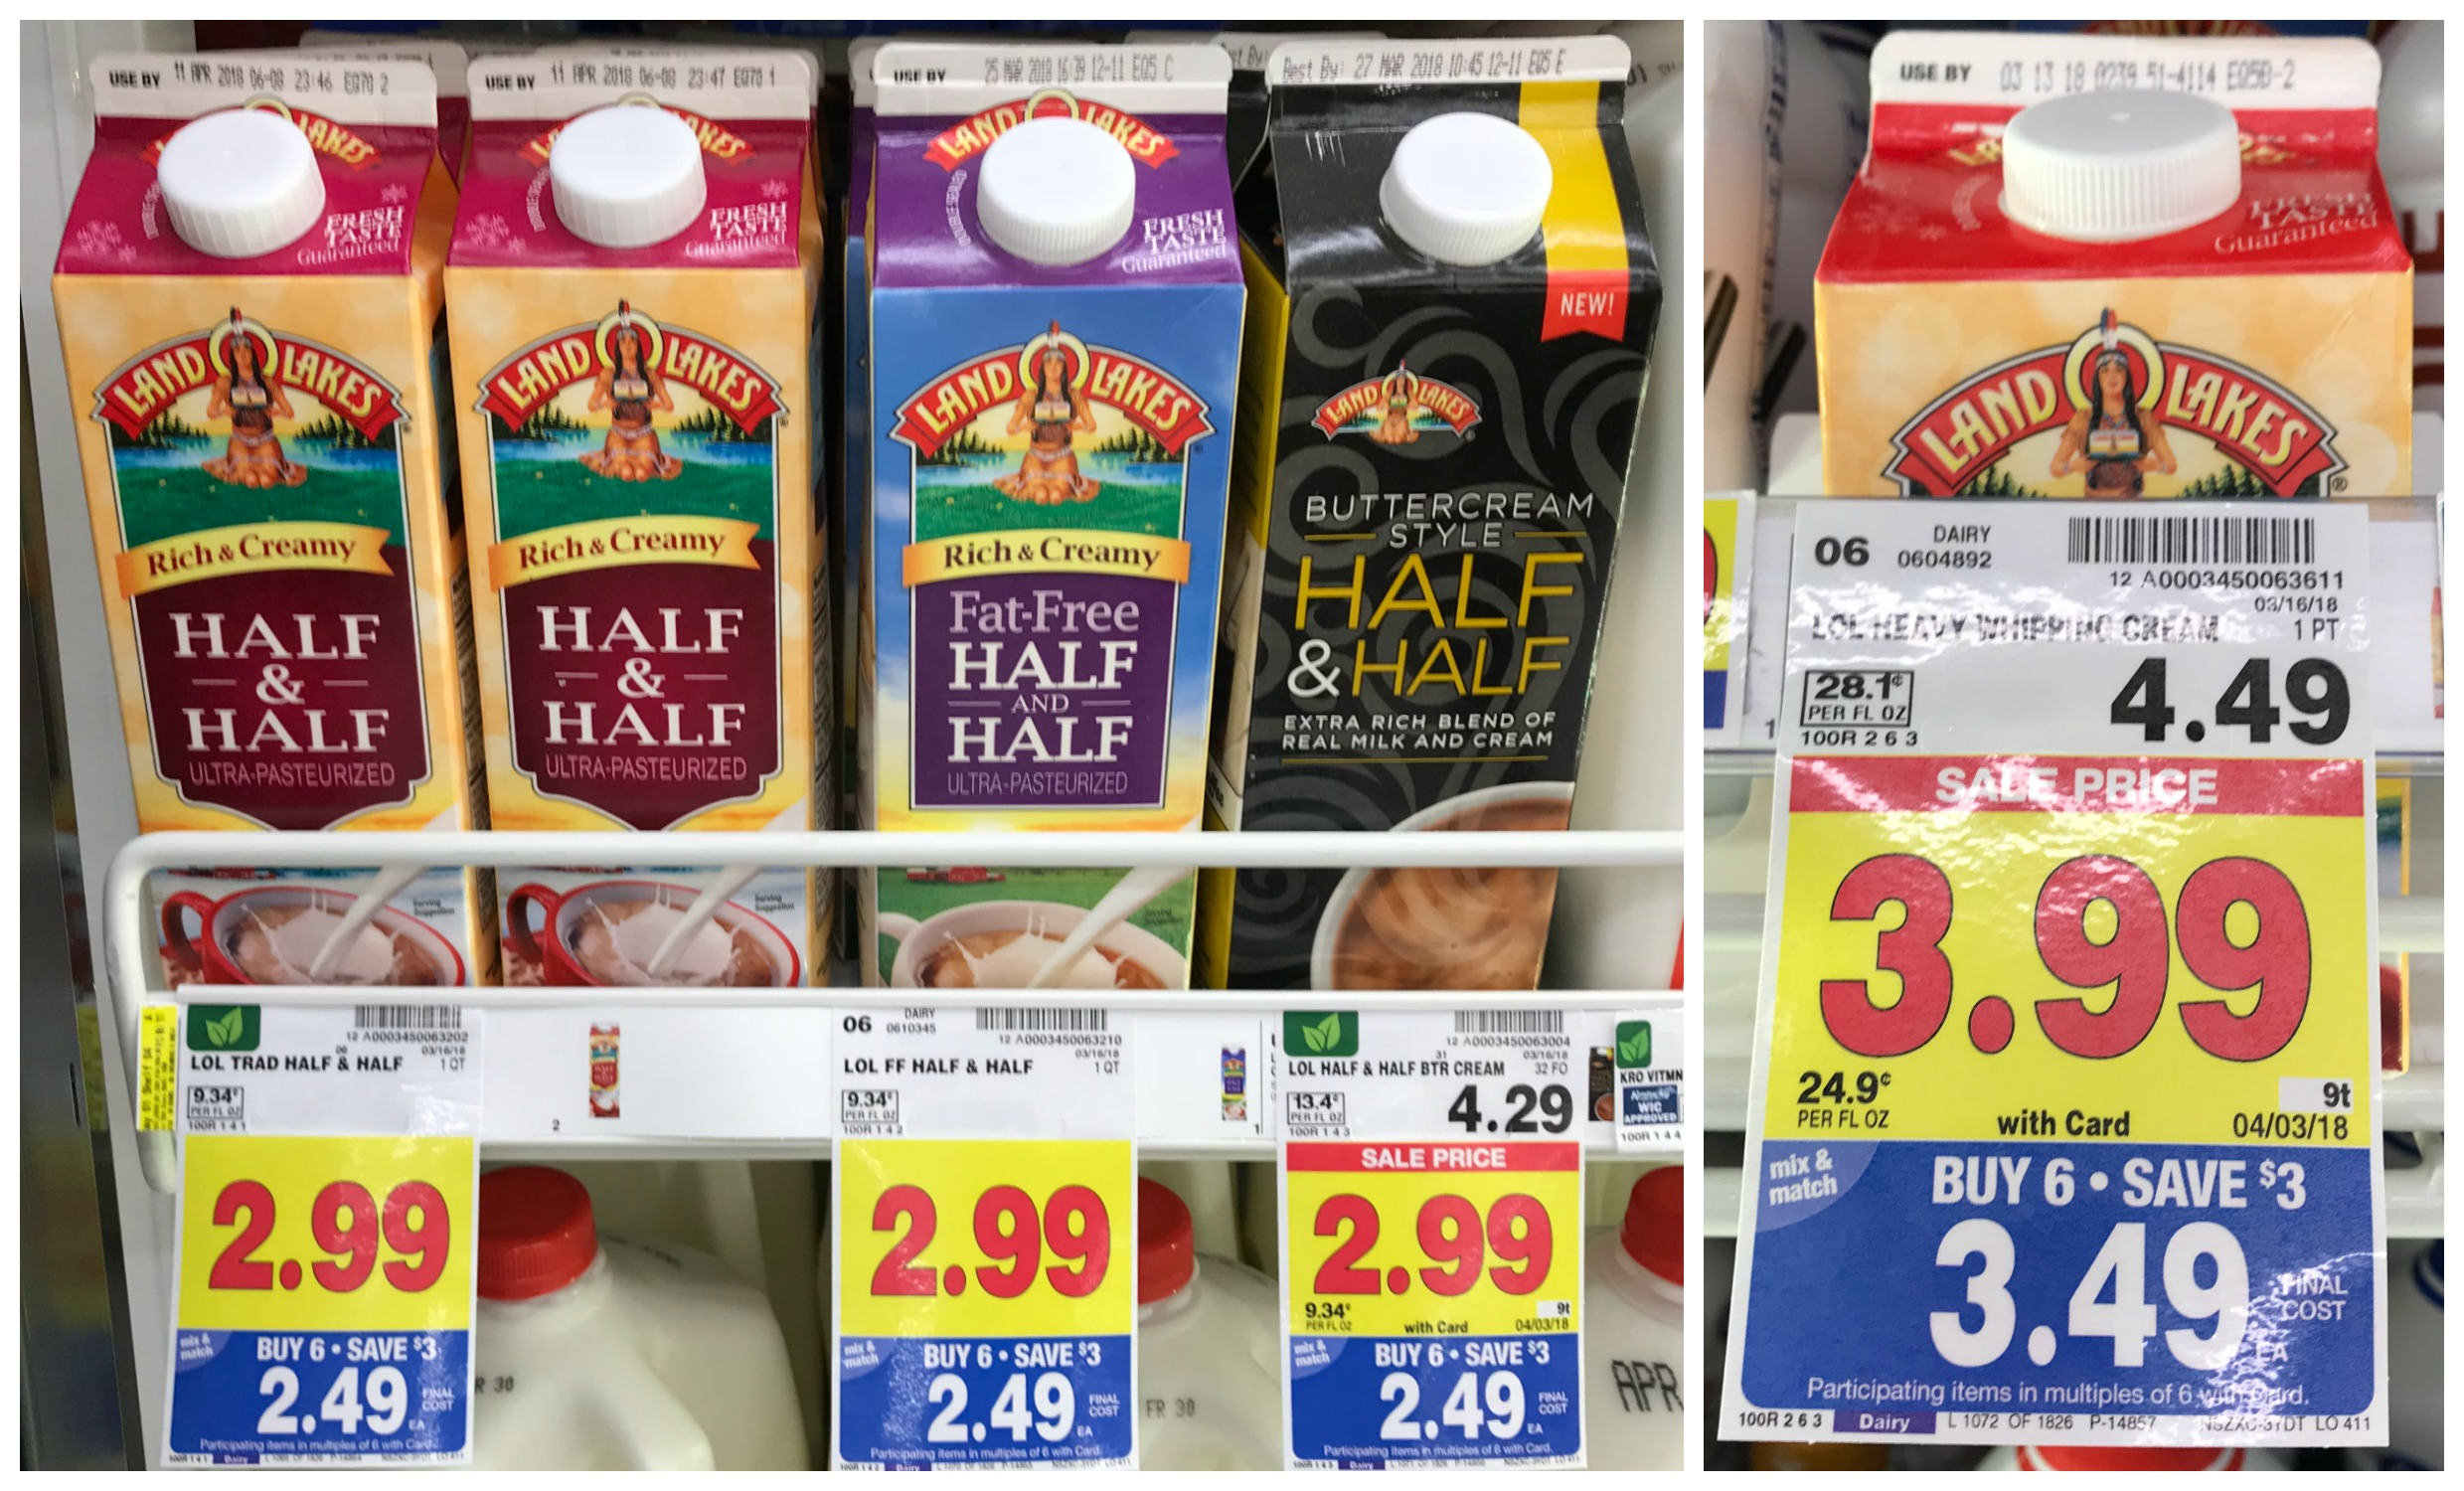 Rare Coupon Land O Lakes Half Half Only 1 99 With Kroger Mega Event Heavy Whipping Cream 2 99 Kroger Krazy